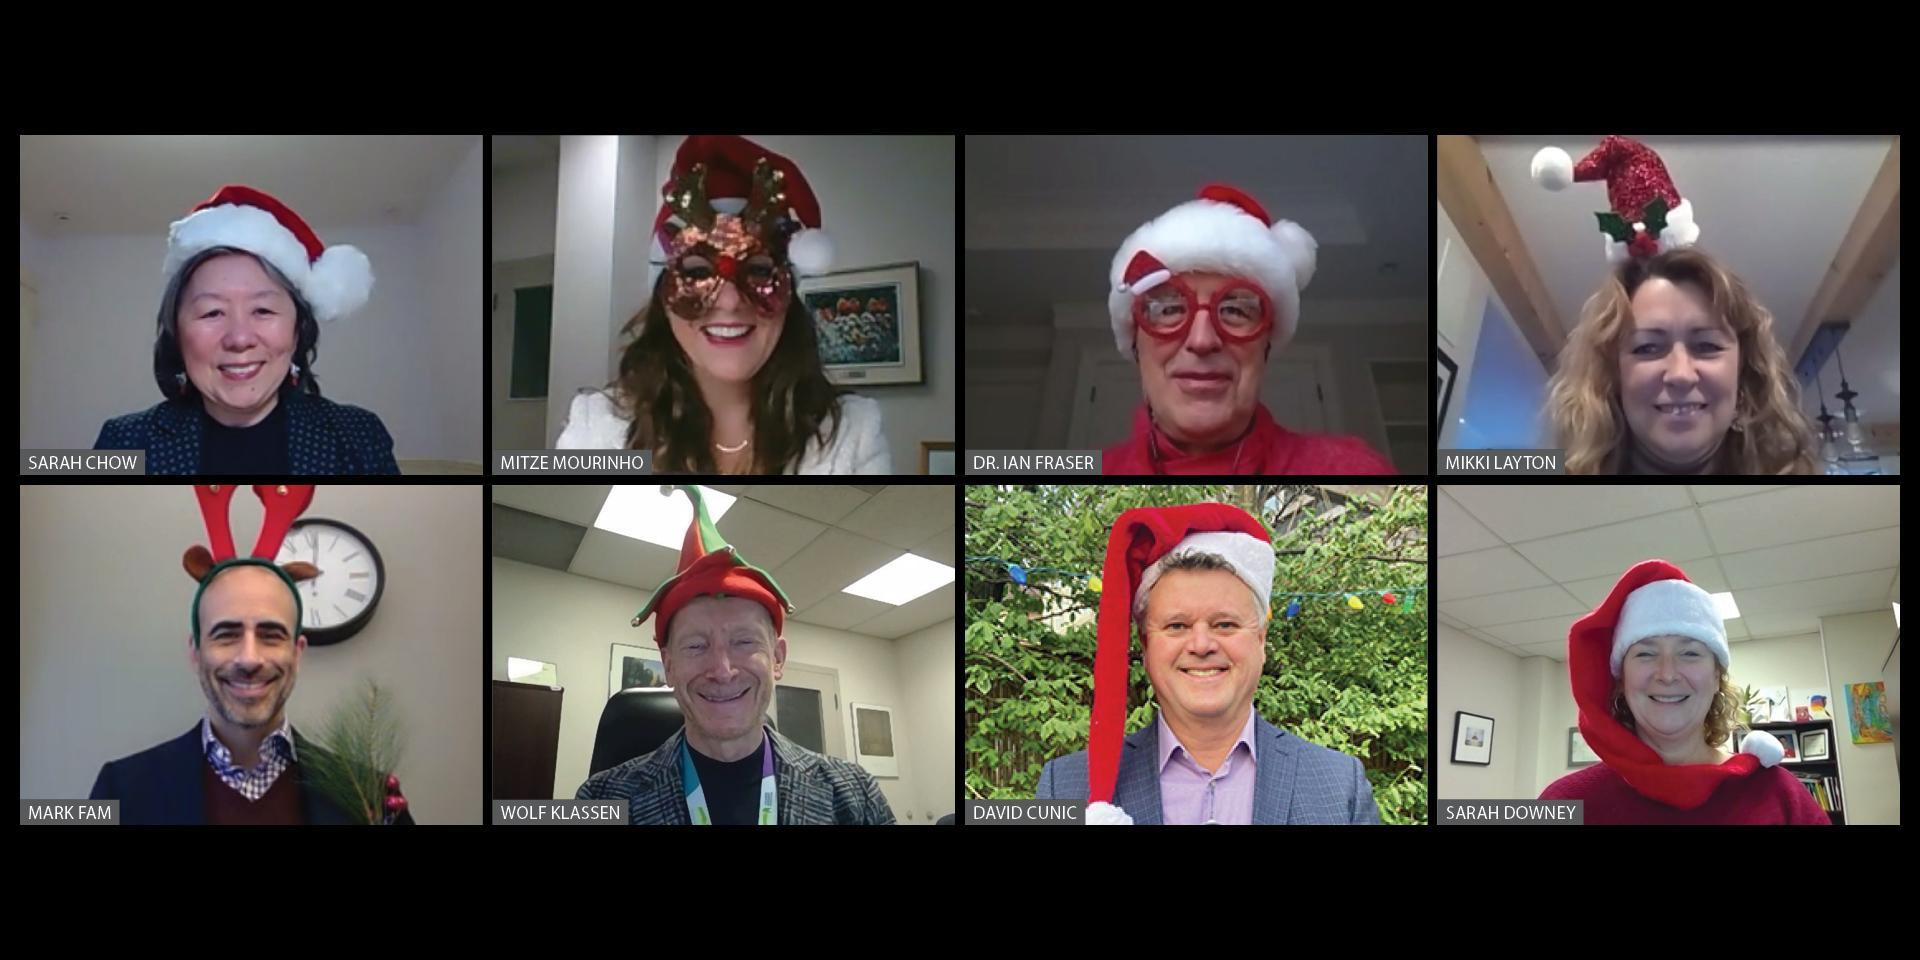 executive team all wearing holiday hats